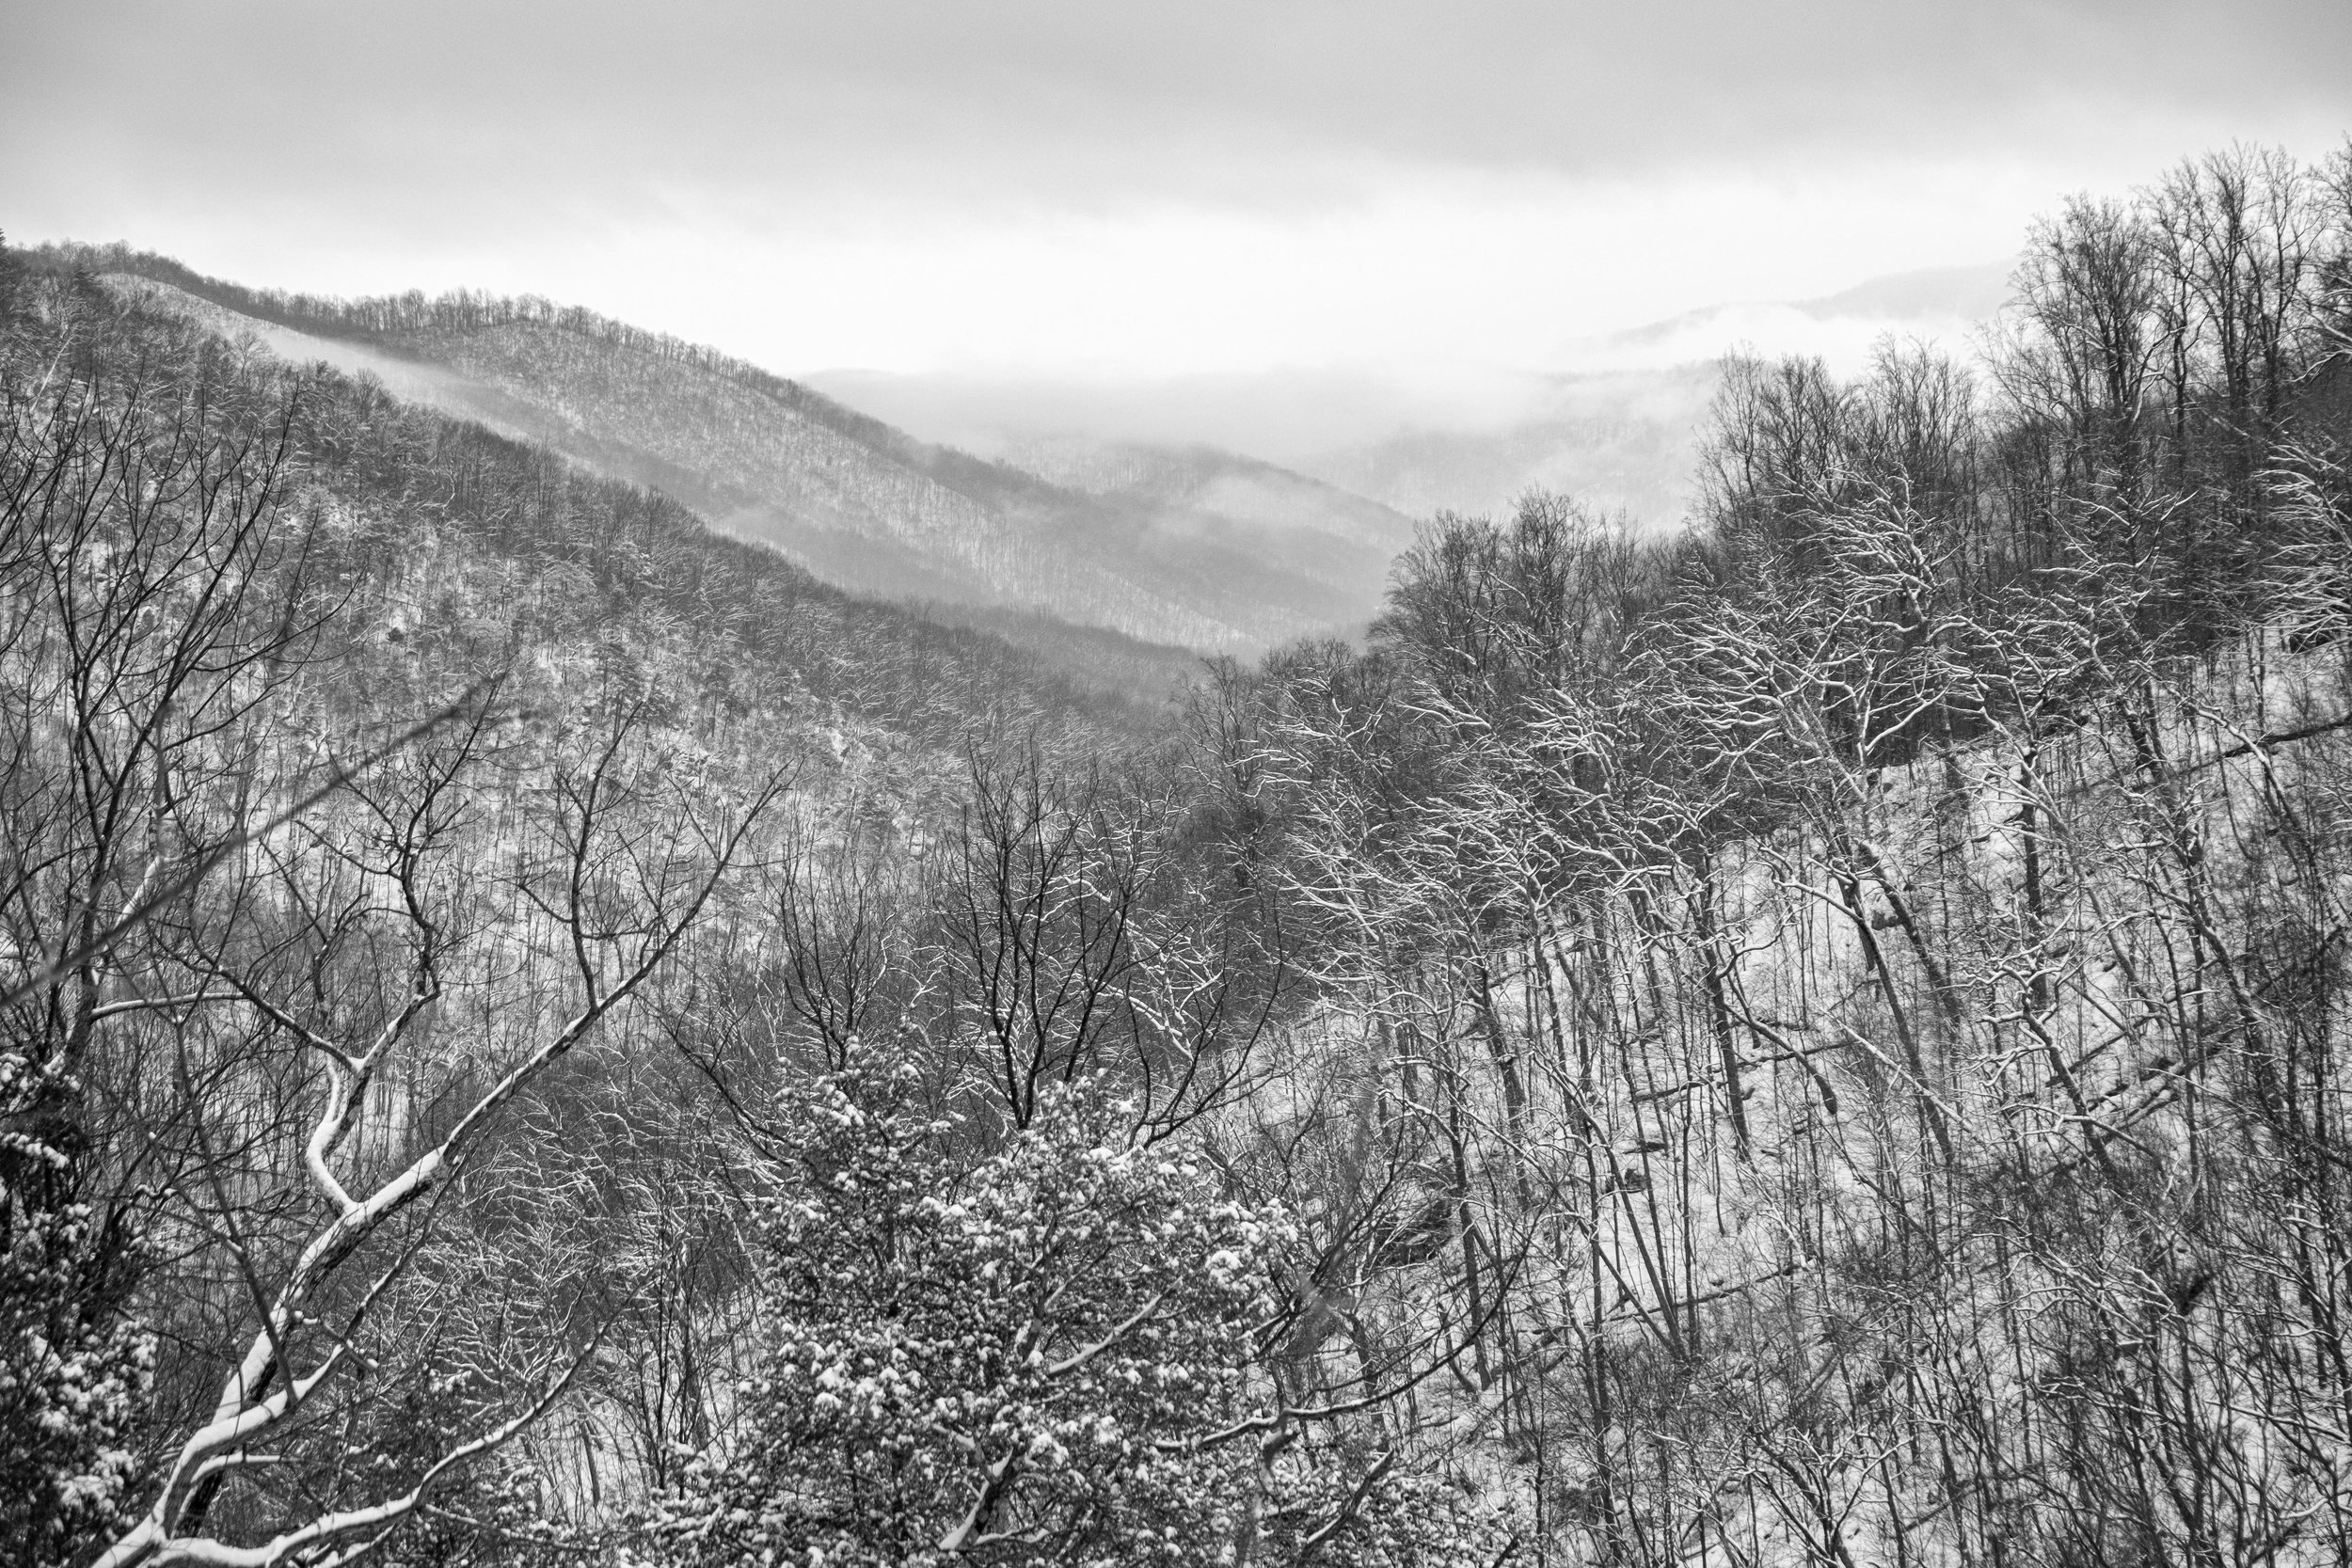 20160215-SP-Shenandoah National Park-279-_DSF2137-Edit.jpg